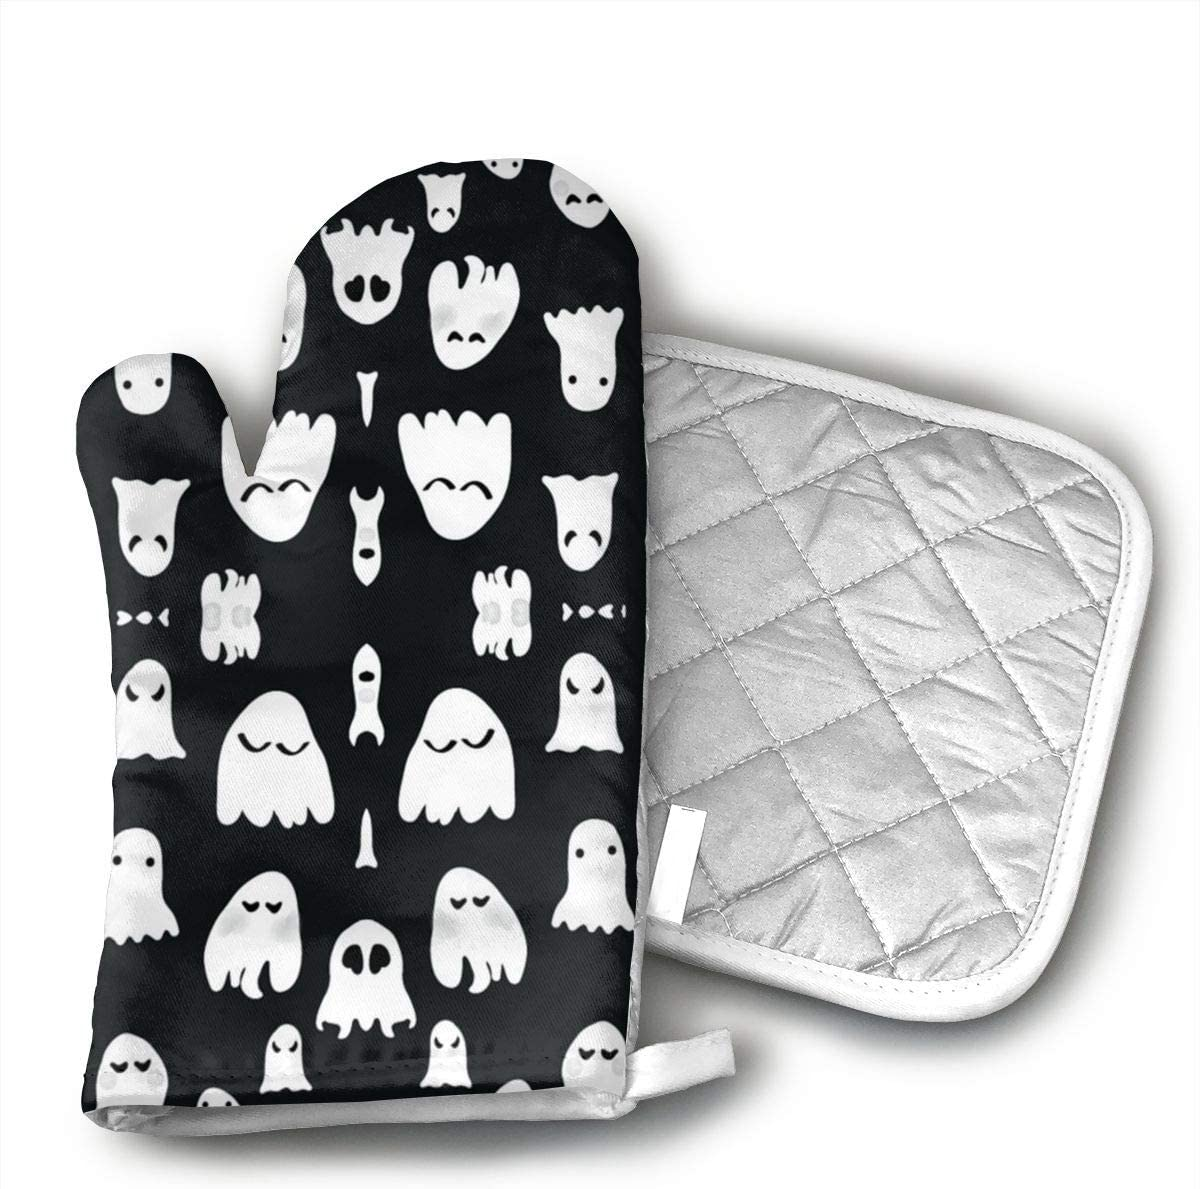 Wiqo9 Ghosts Oven Mitts and Pot Holders Kitchen Mitten Cooking Gloves,Cooking, Baking, BBQ.